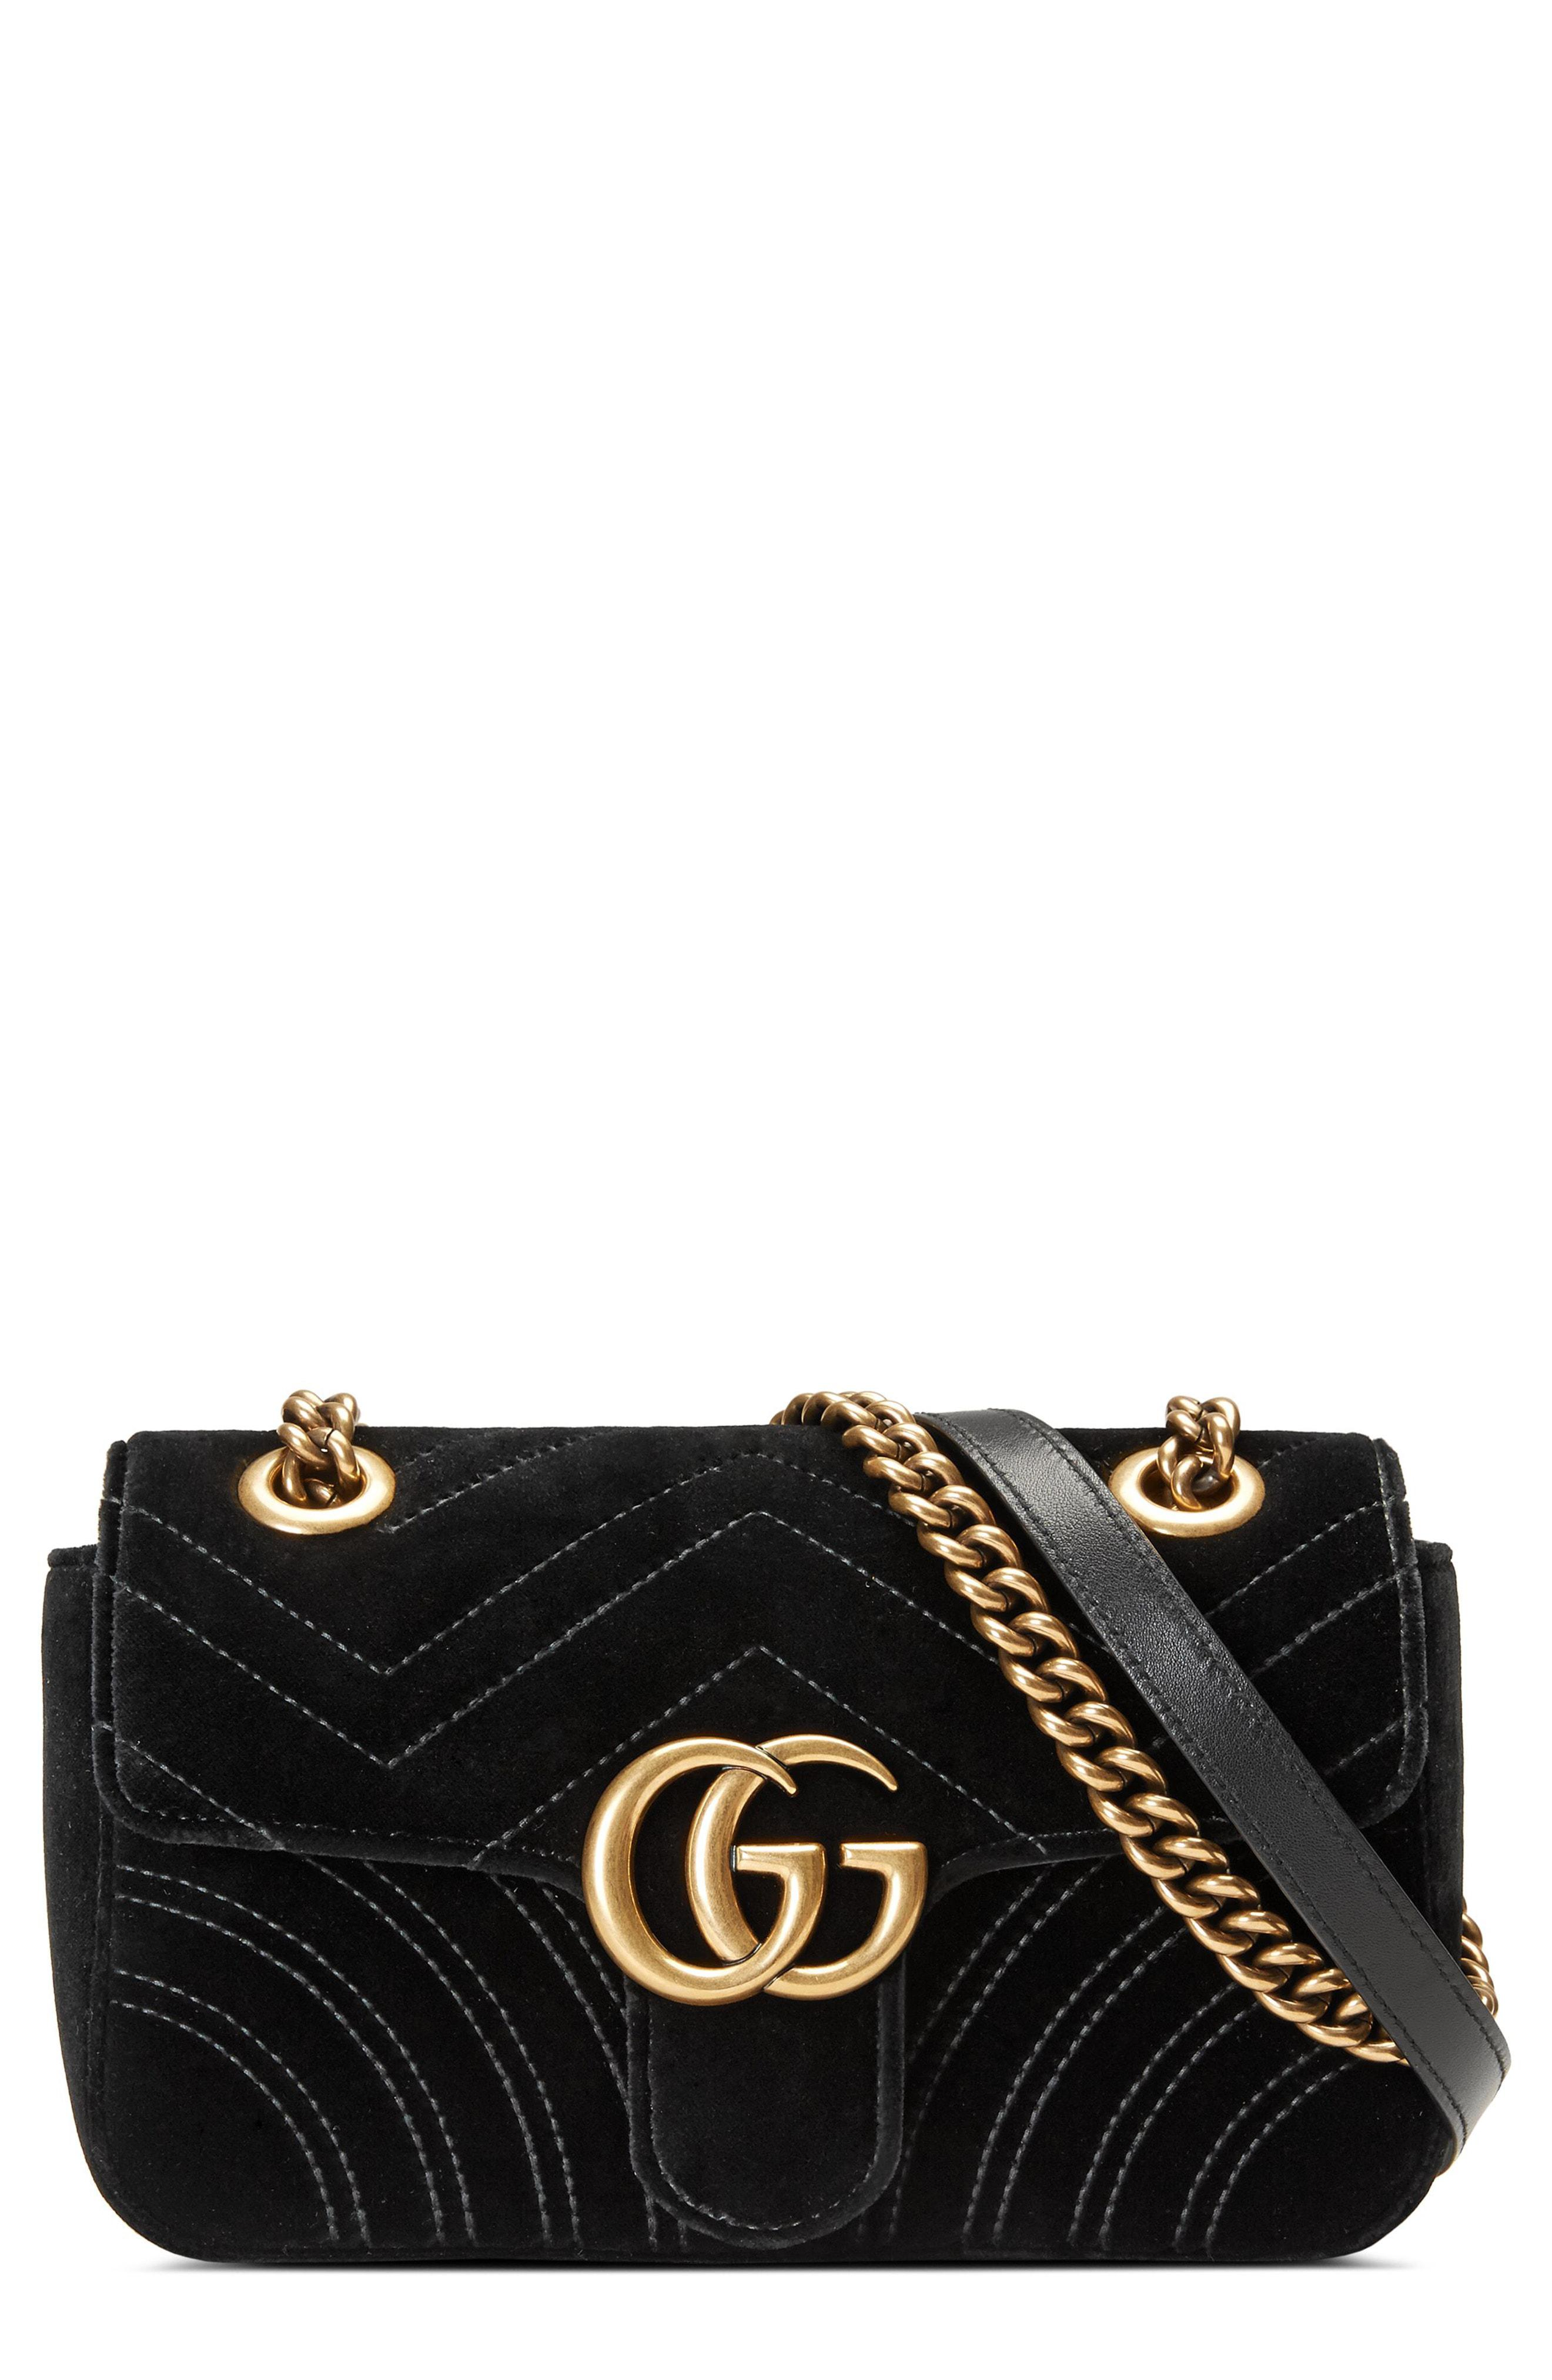 47a58f1c2 Gucci. Women's Black Small Gg Marmont 2.0 Matelasse Velvet Shoulder Bag